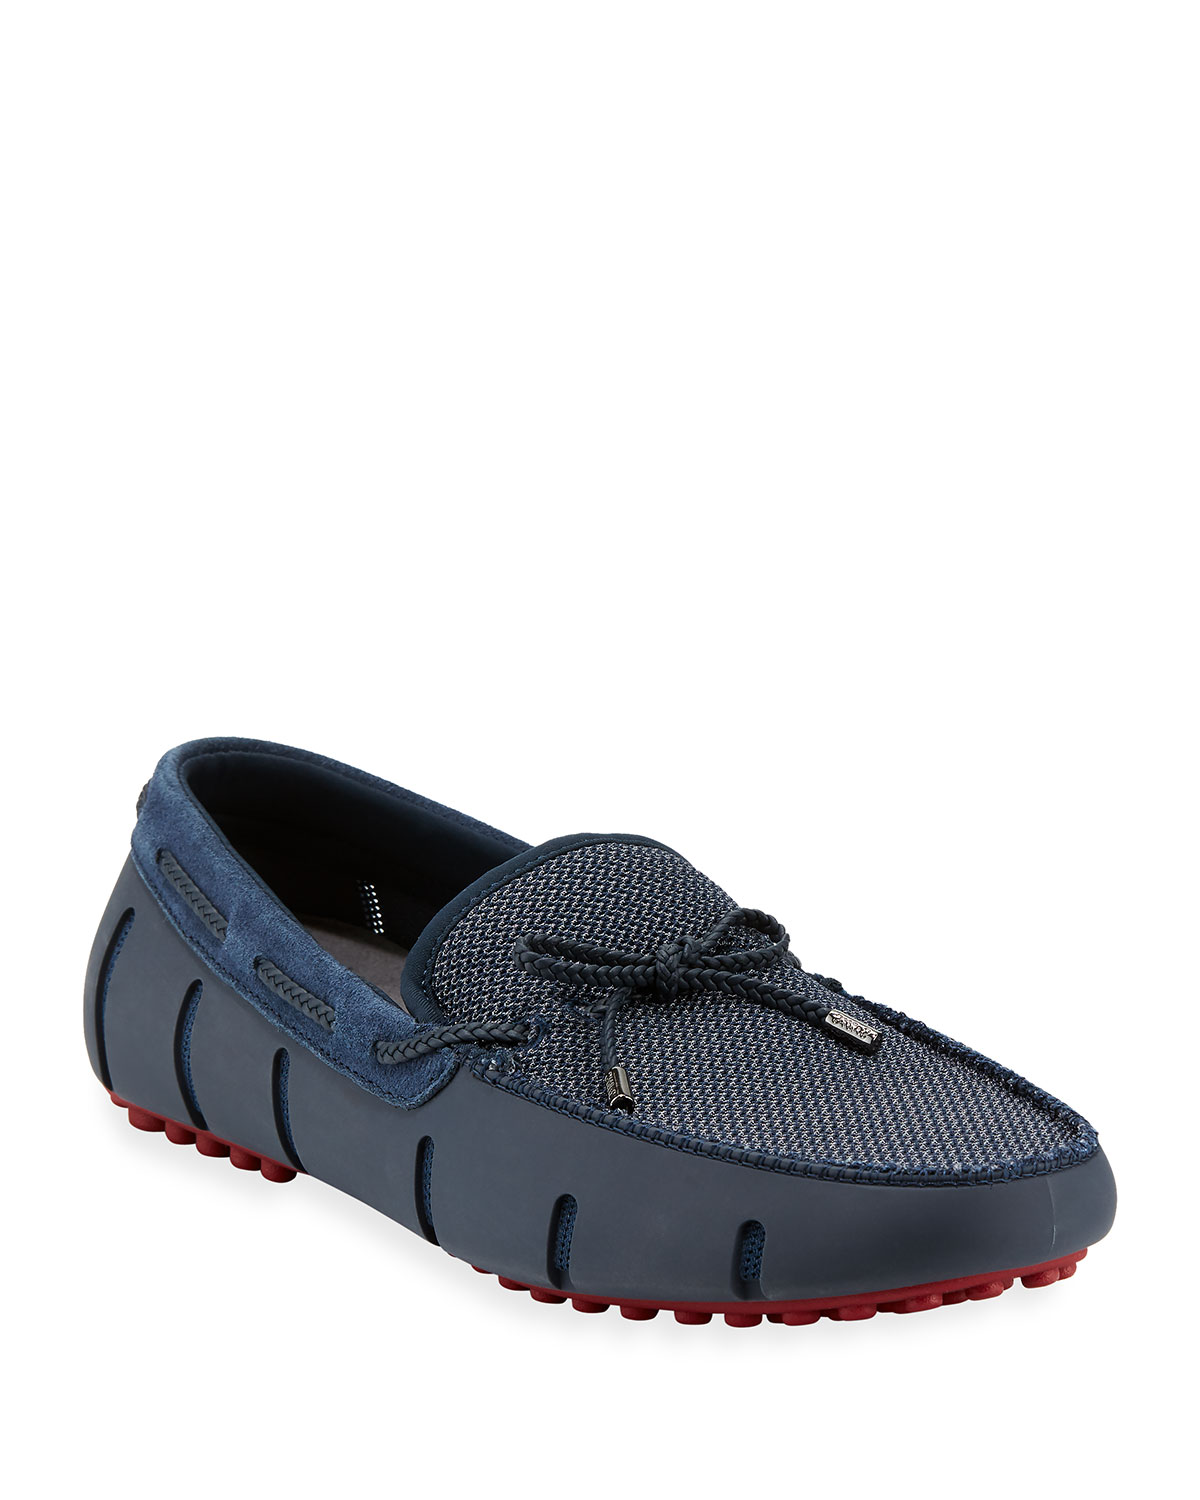 818c6abf719 Swims Mesh   Rubber Braided-Lace Boat Shoe